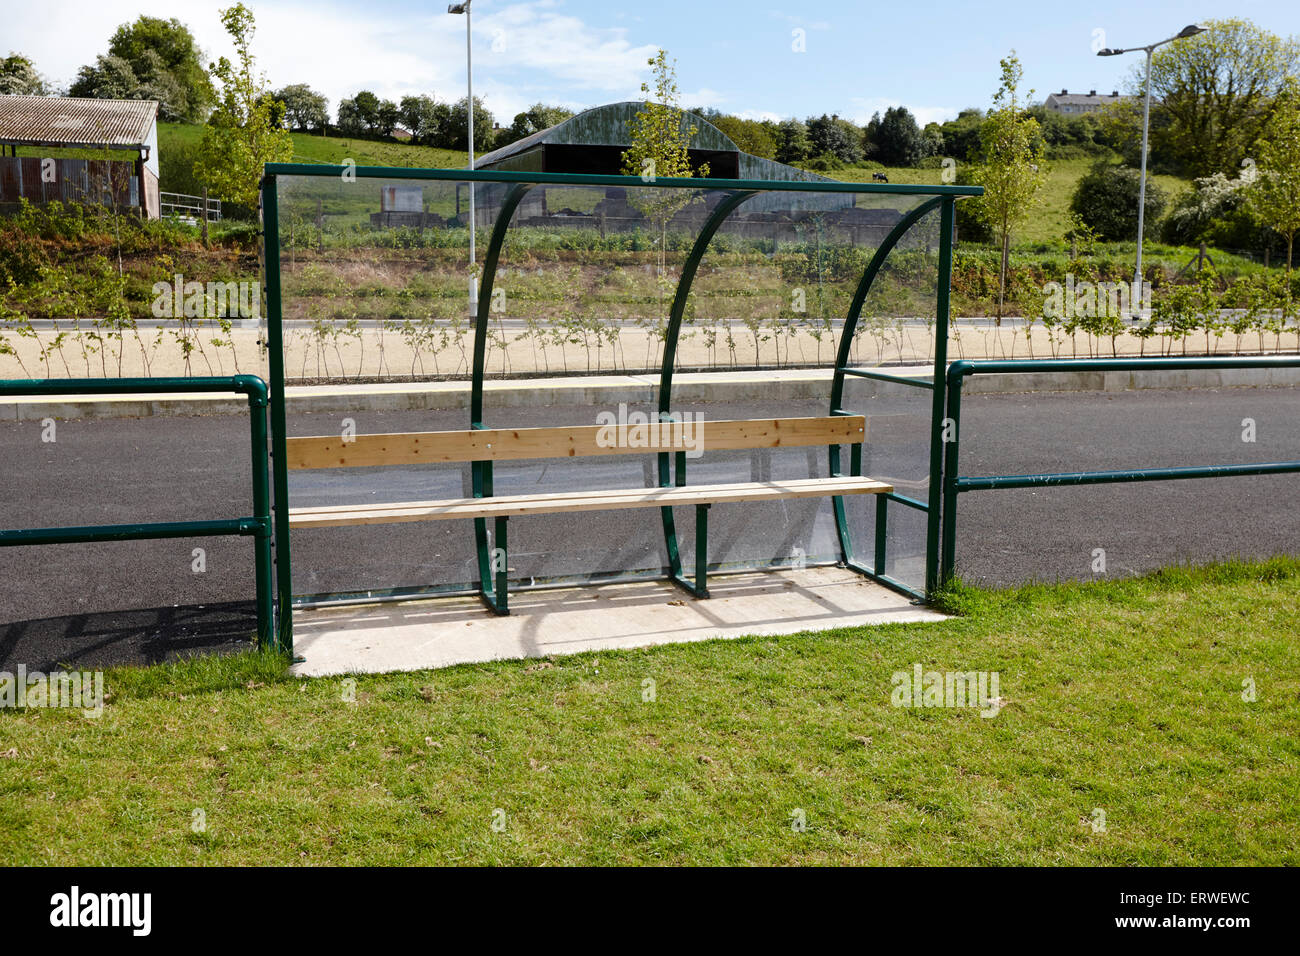 small team dugout benches on a local community sports field county monaghan republic of ireland - Stock Image